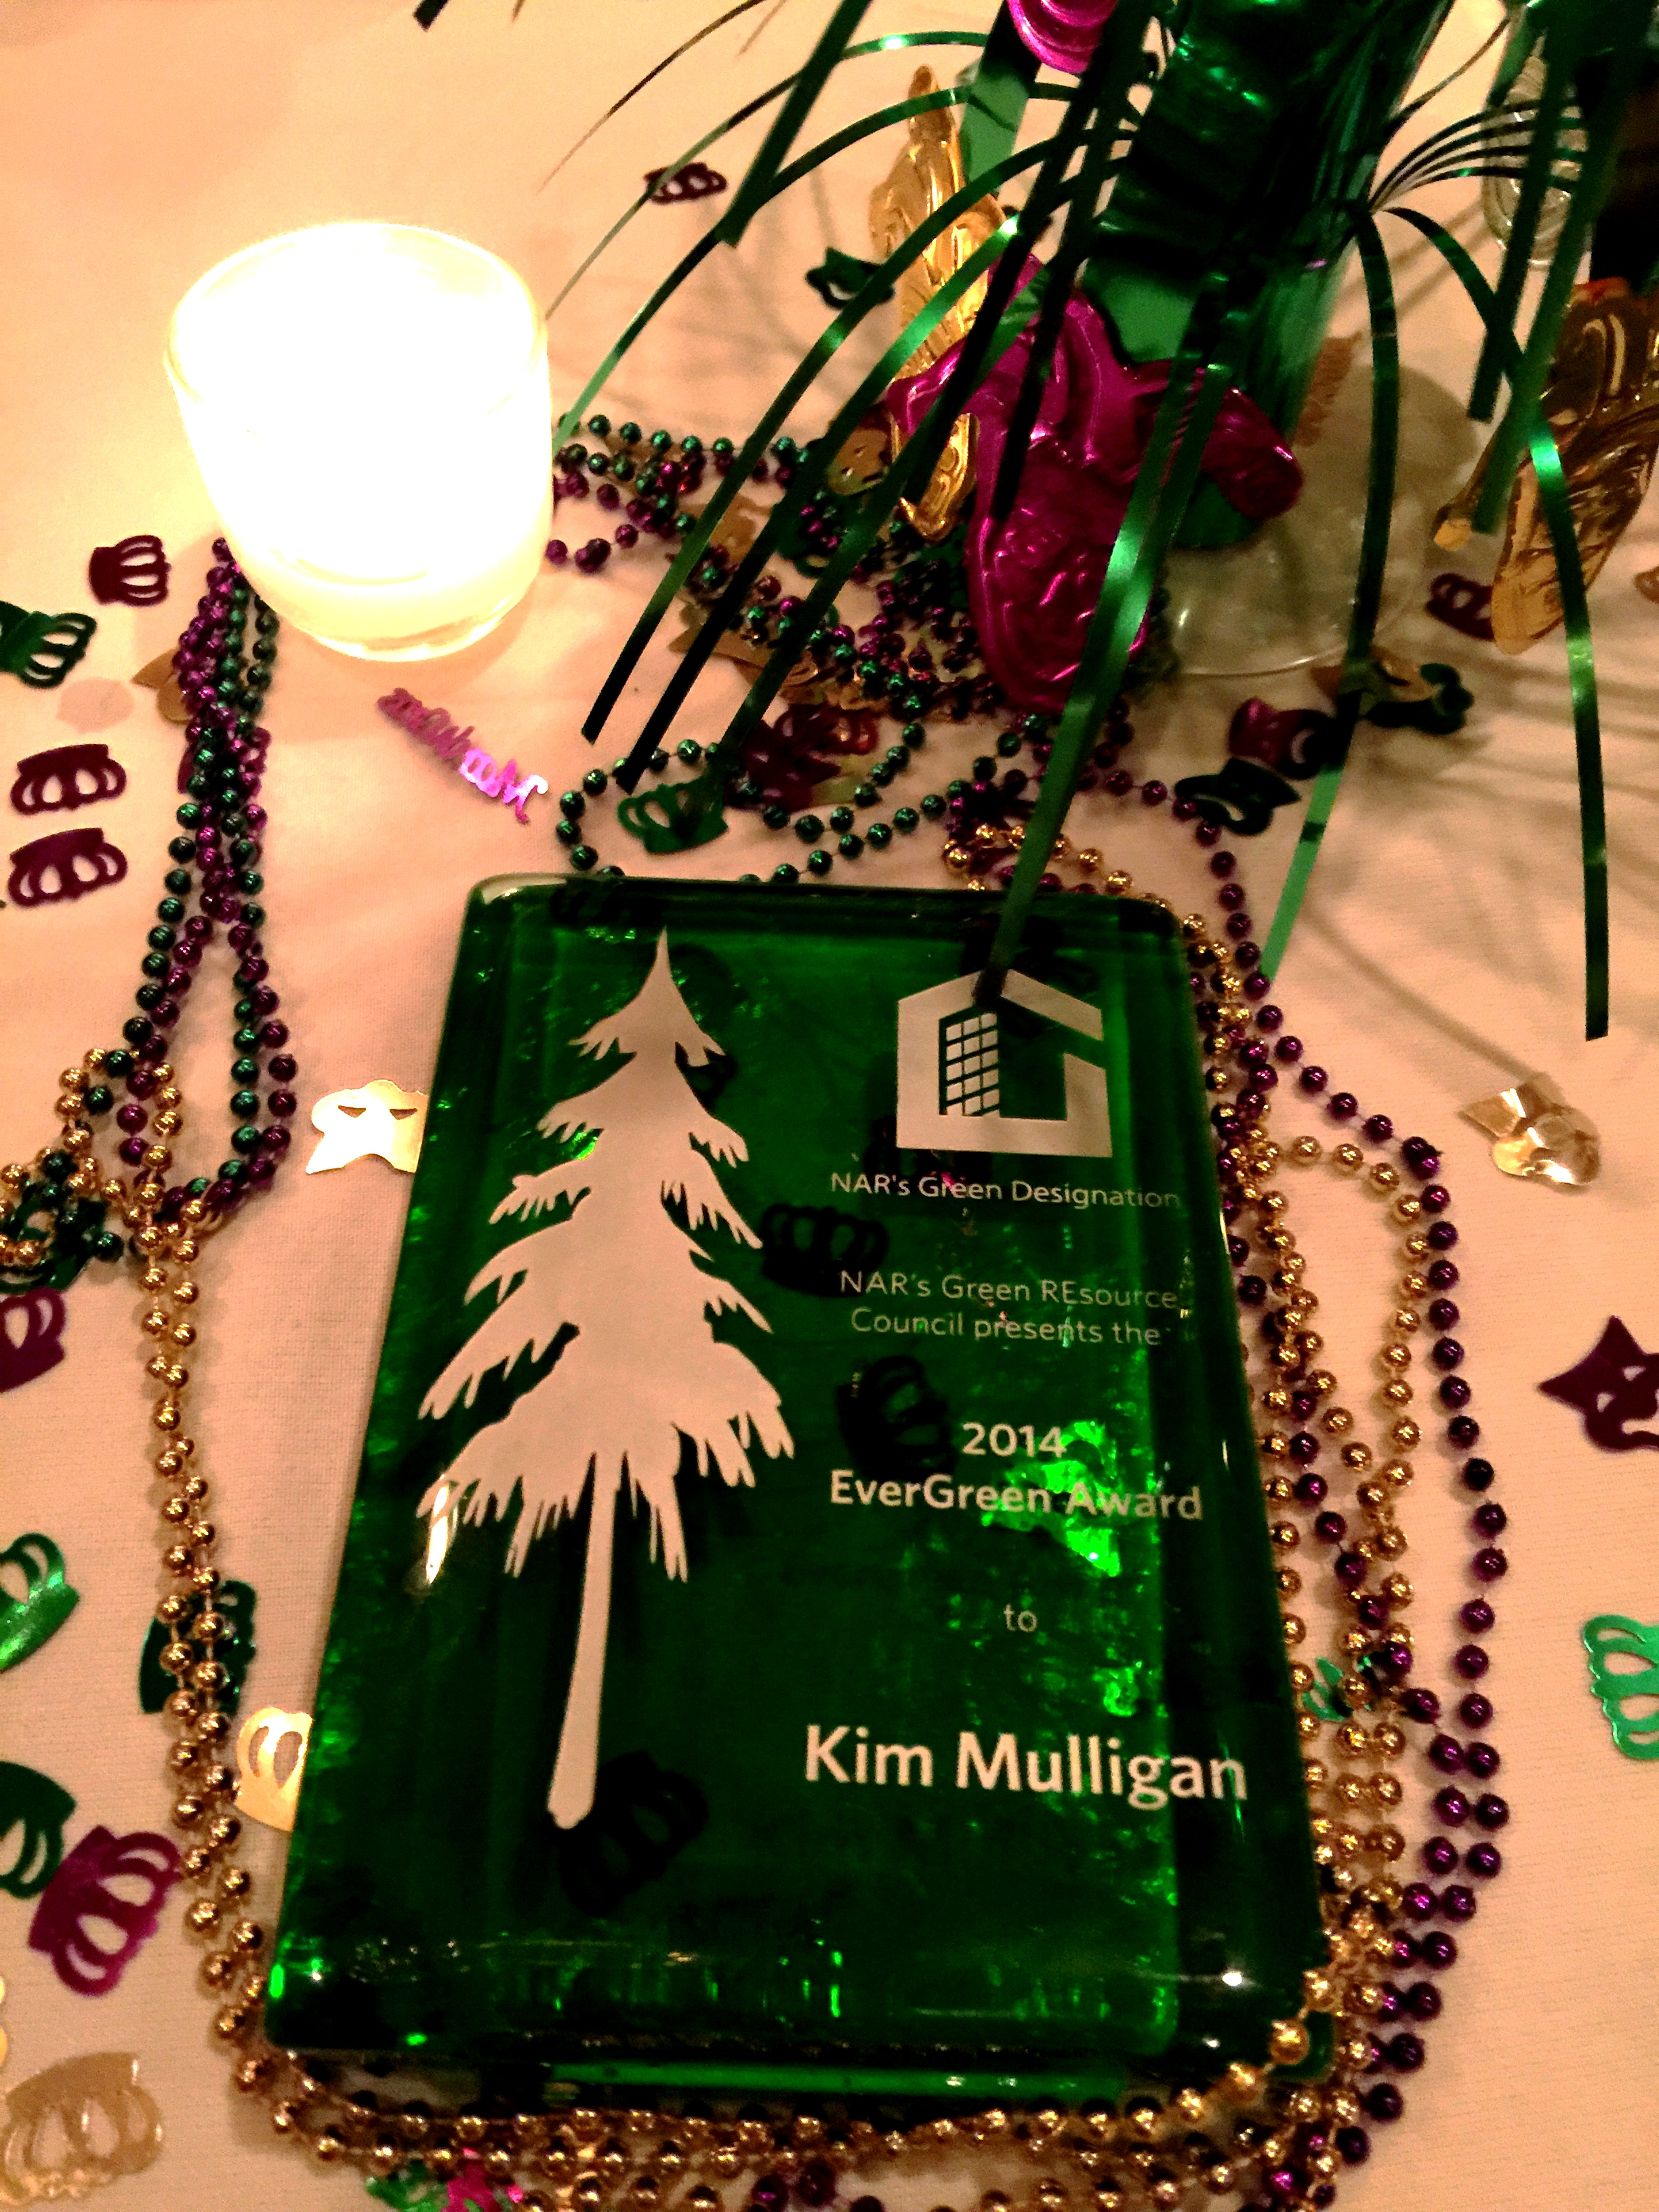 National Association of Realtors Evergreen Award Winners